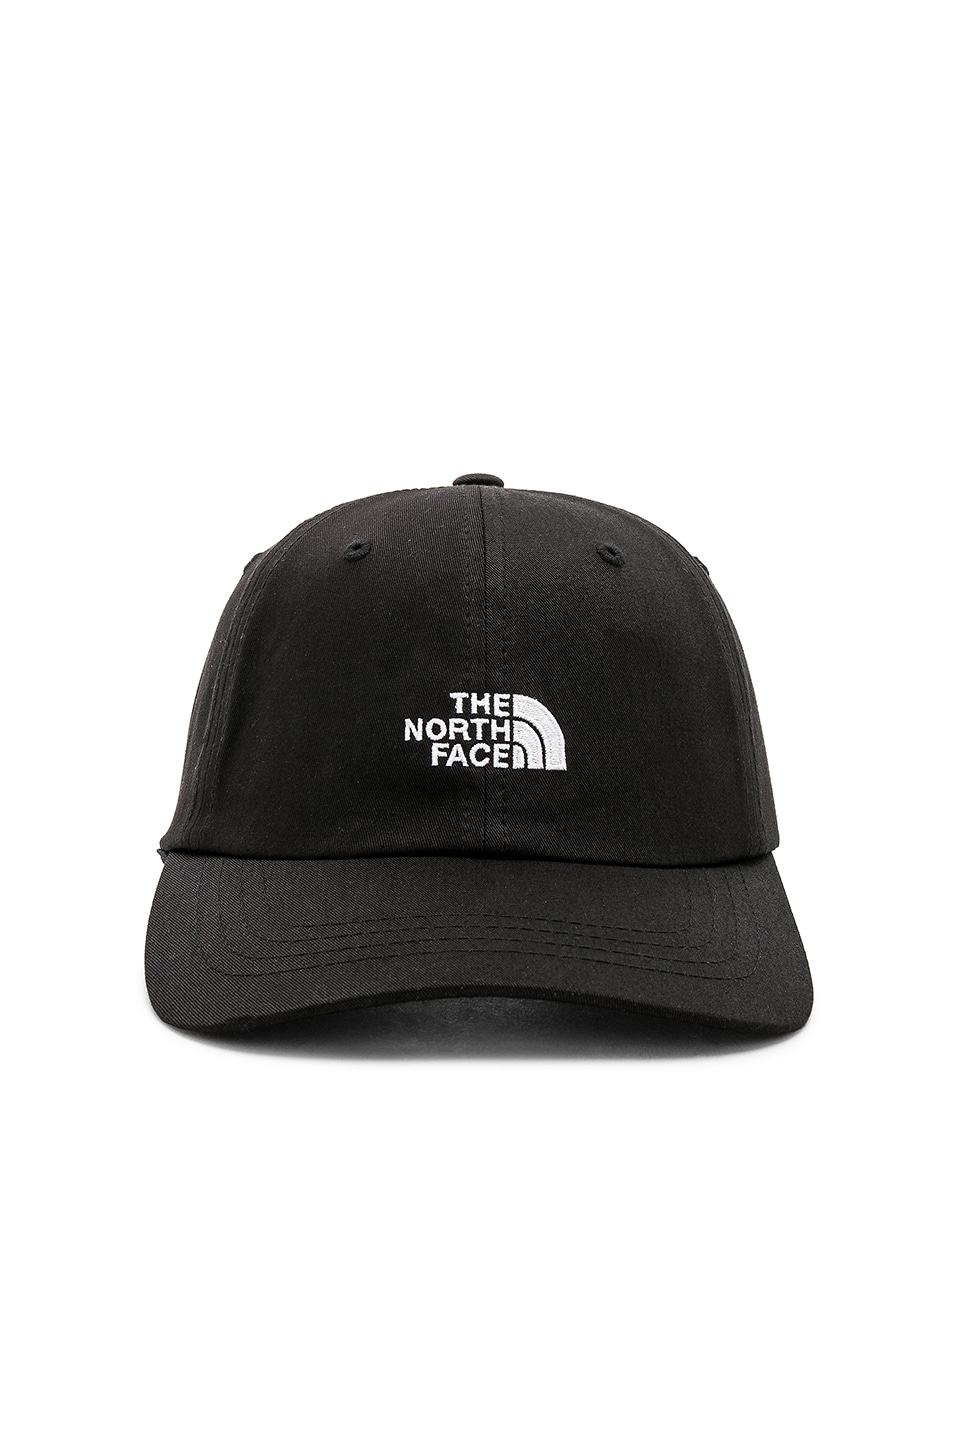 cb0ce8129d1 The North Face The Norm Hat   TNF White in TNF Black